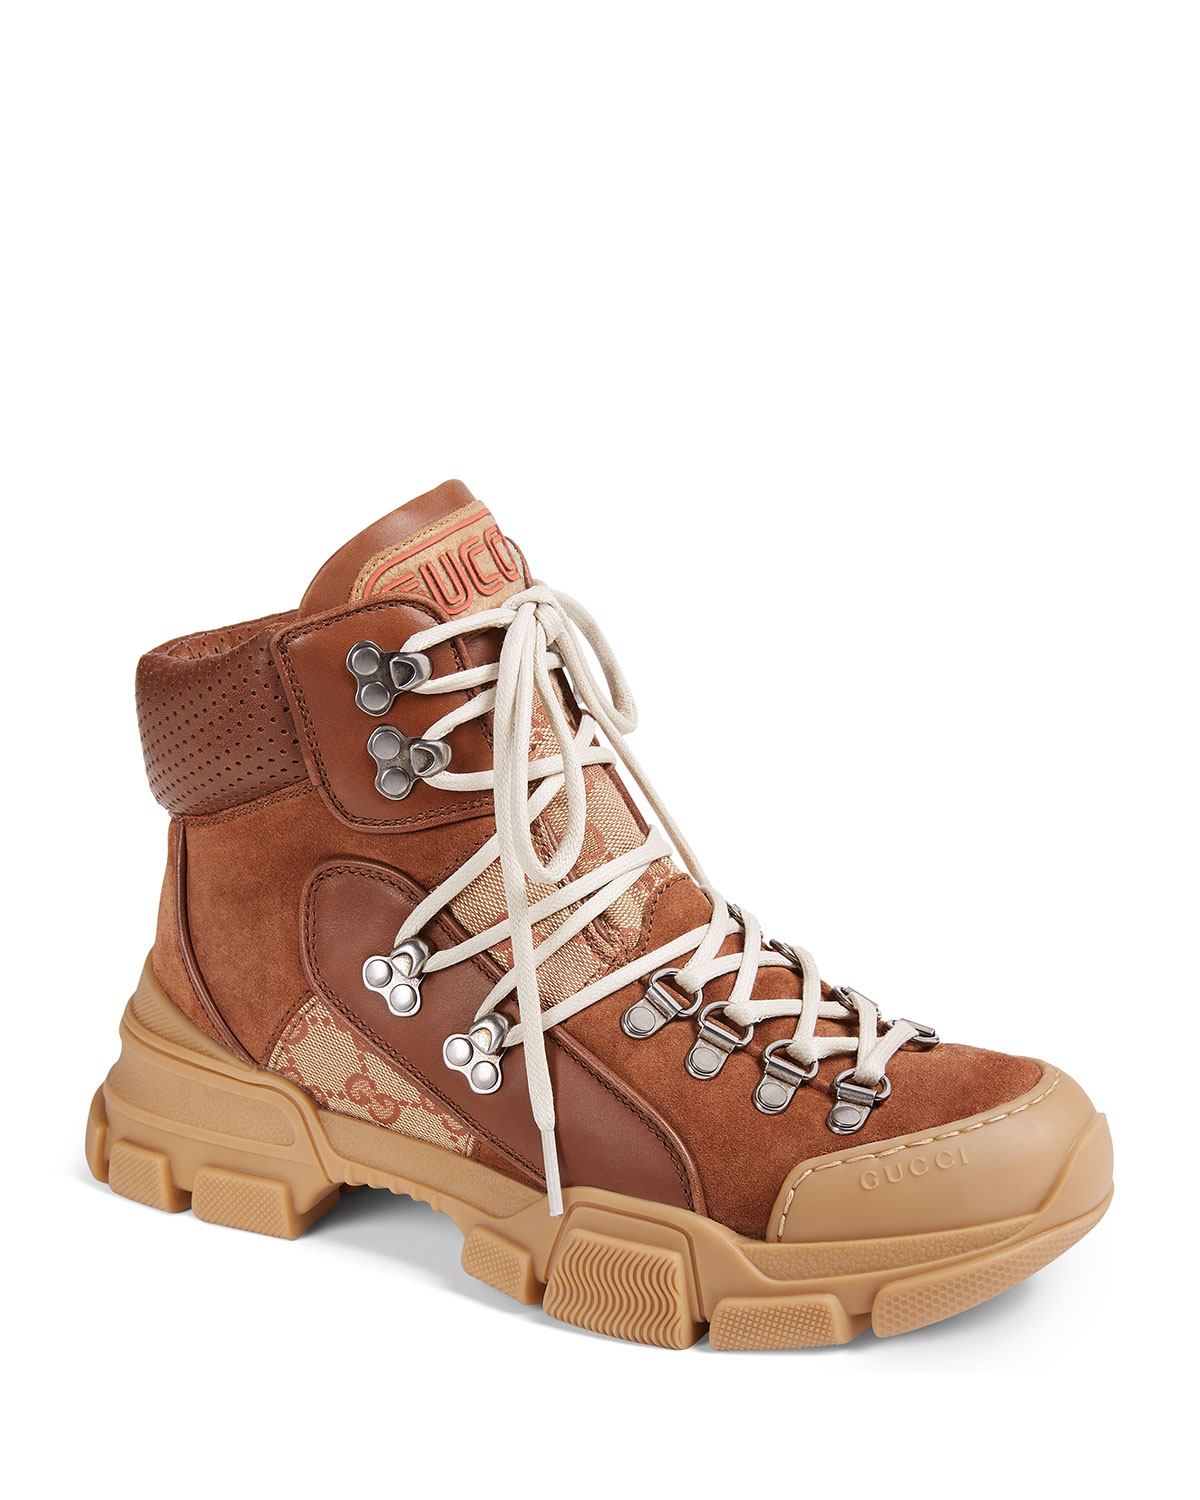 quality design select for authentic order Flashtrek GG Fabric Hiker